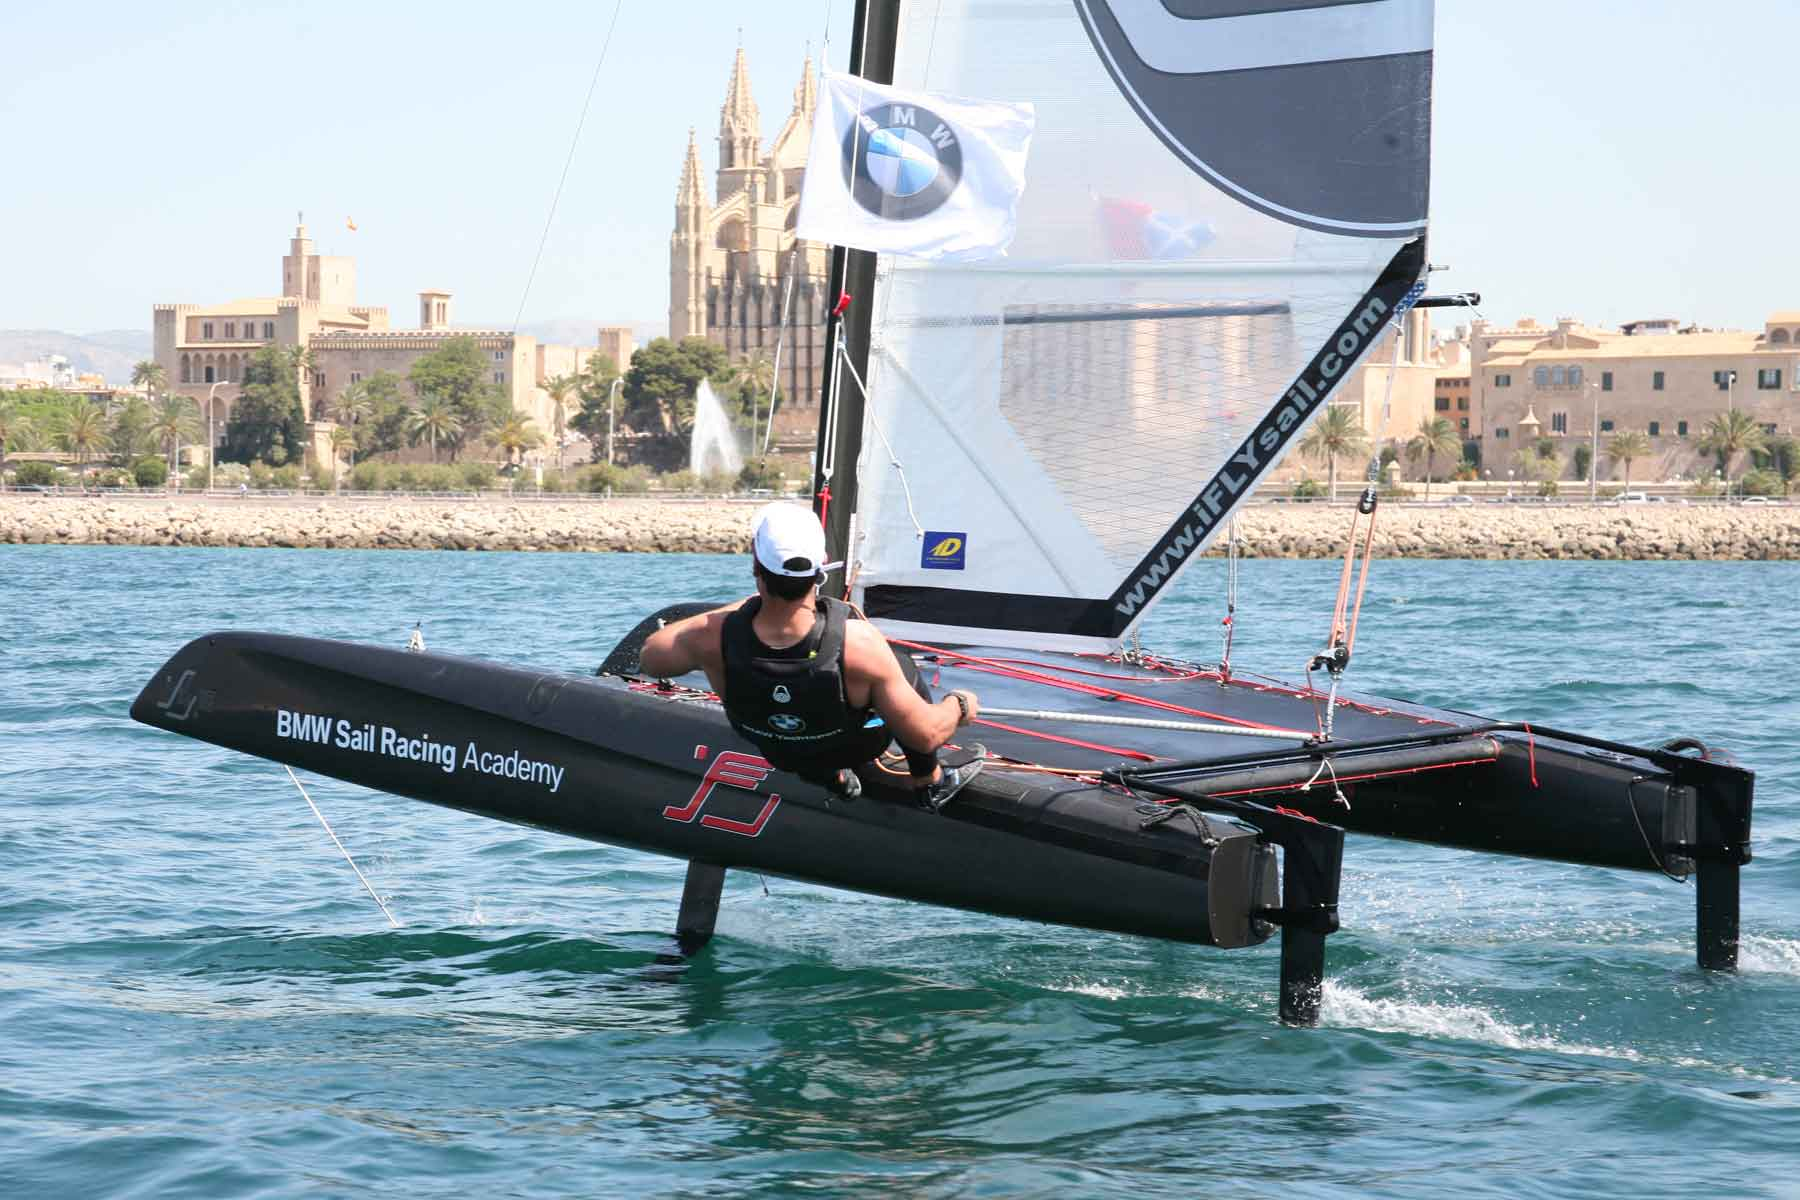 BMW sailracing Akademie foiling